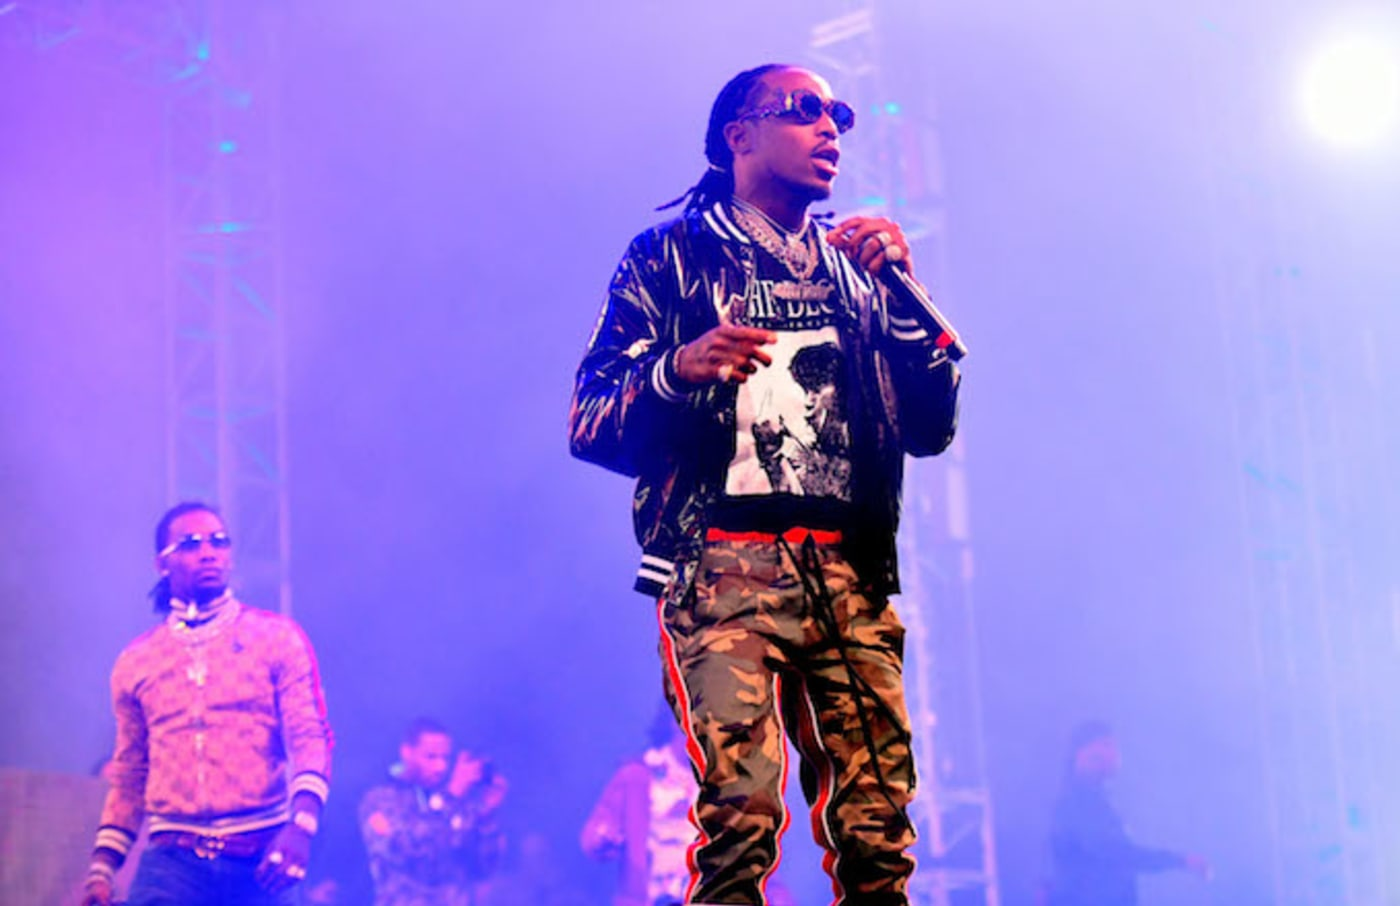 This is Quavo of the Migos performing.